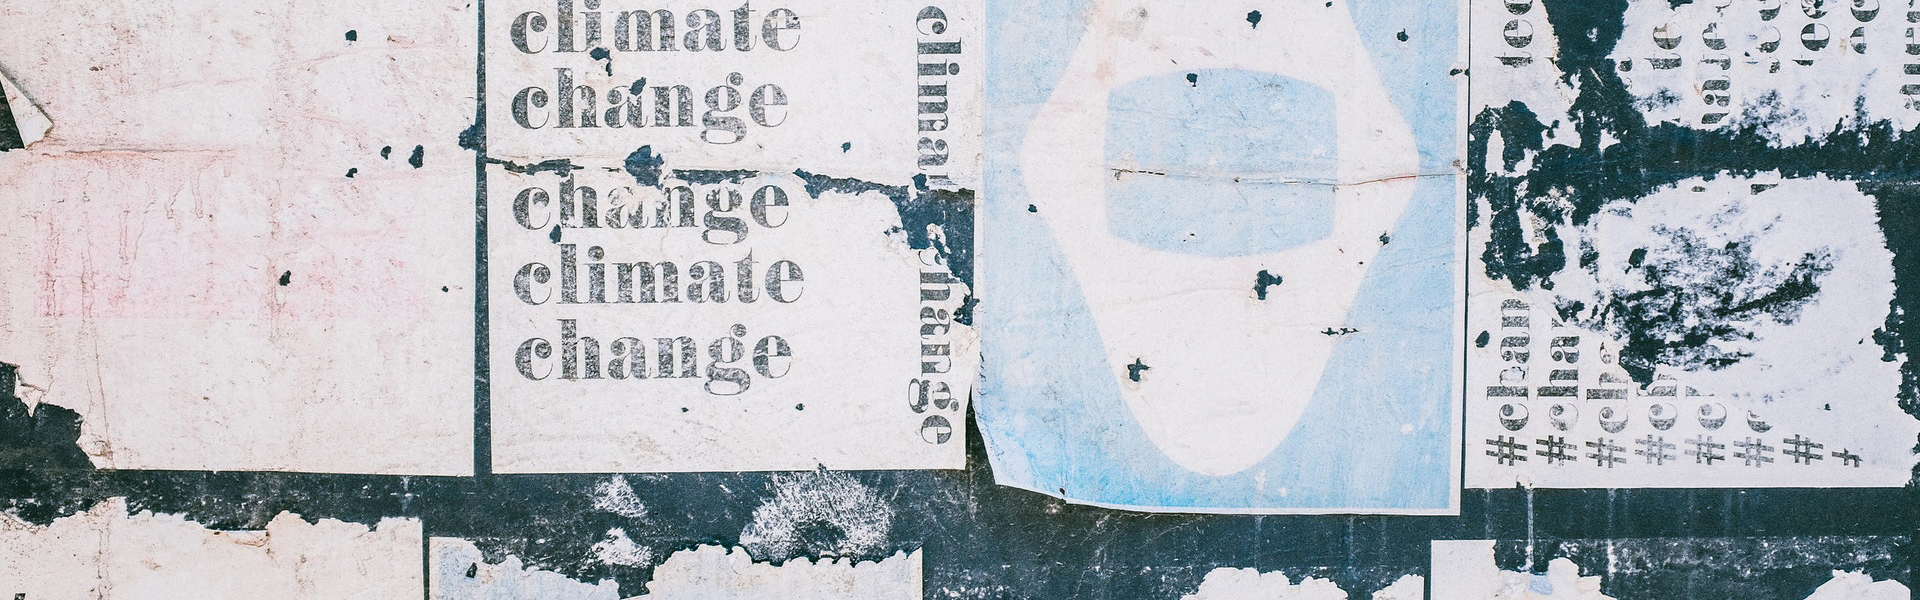 Poster wall of Change Climate sun-bleached posters